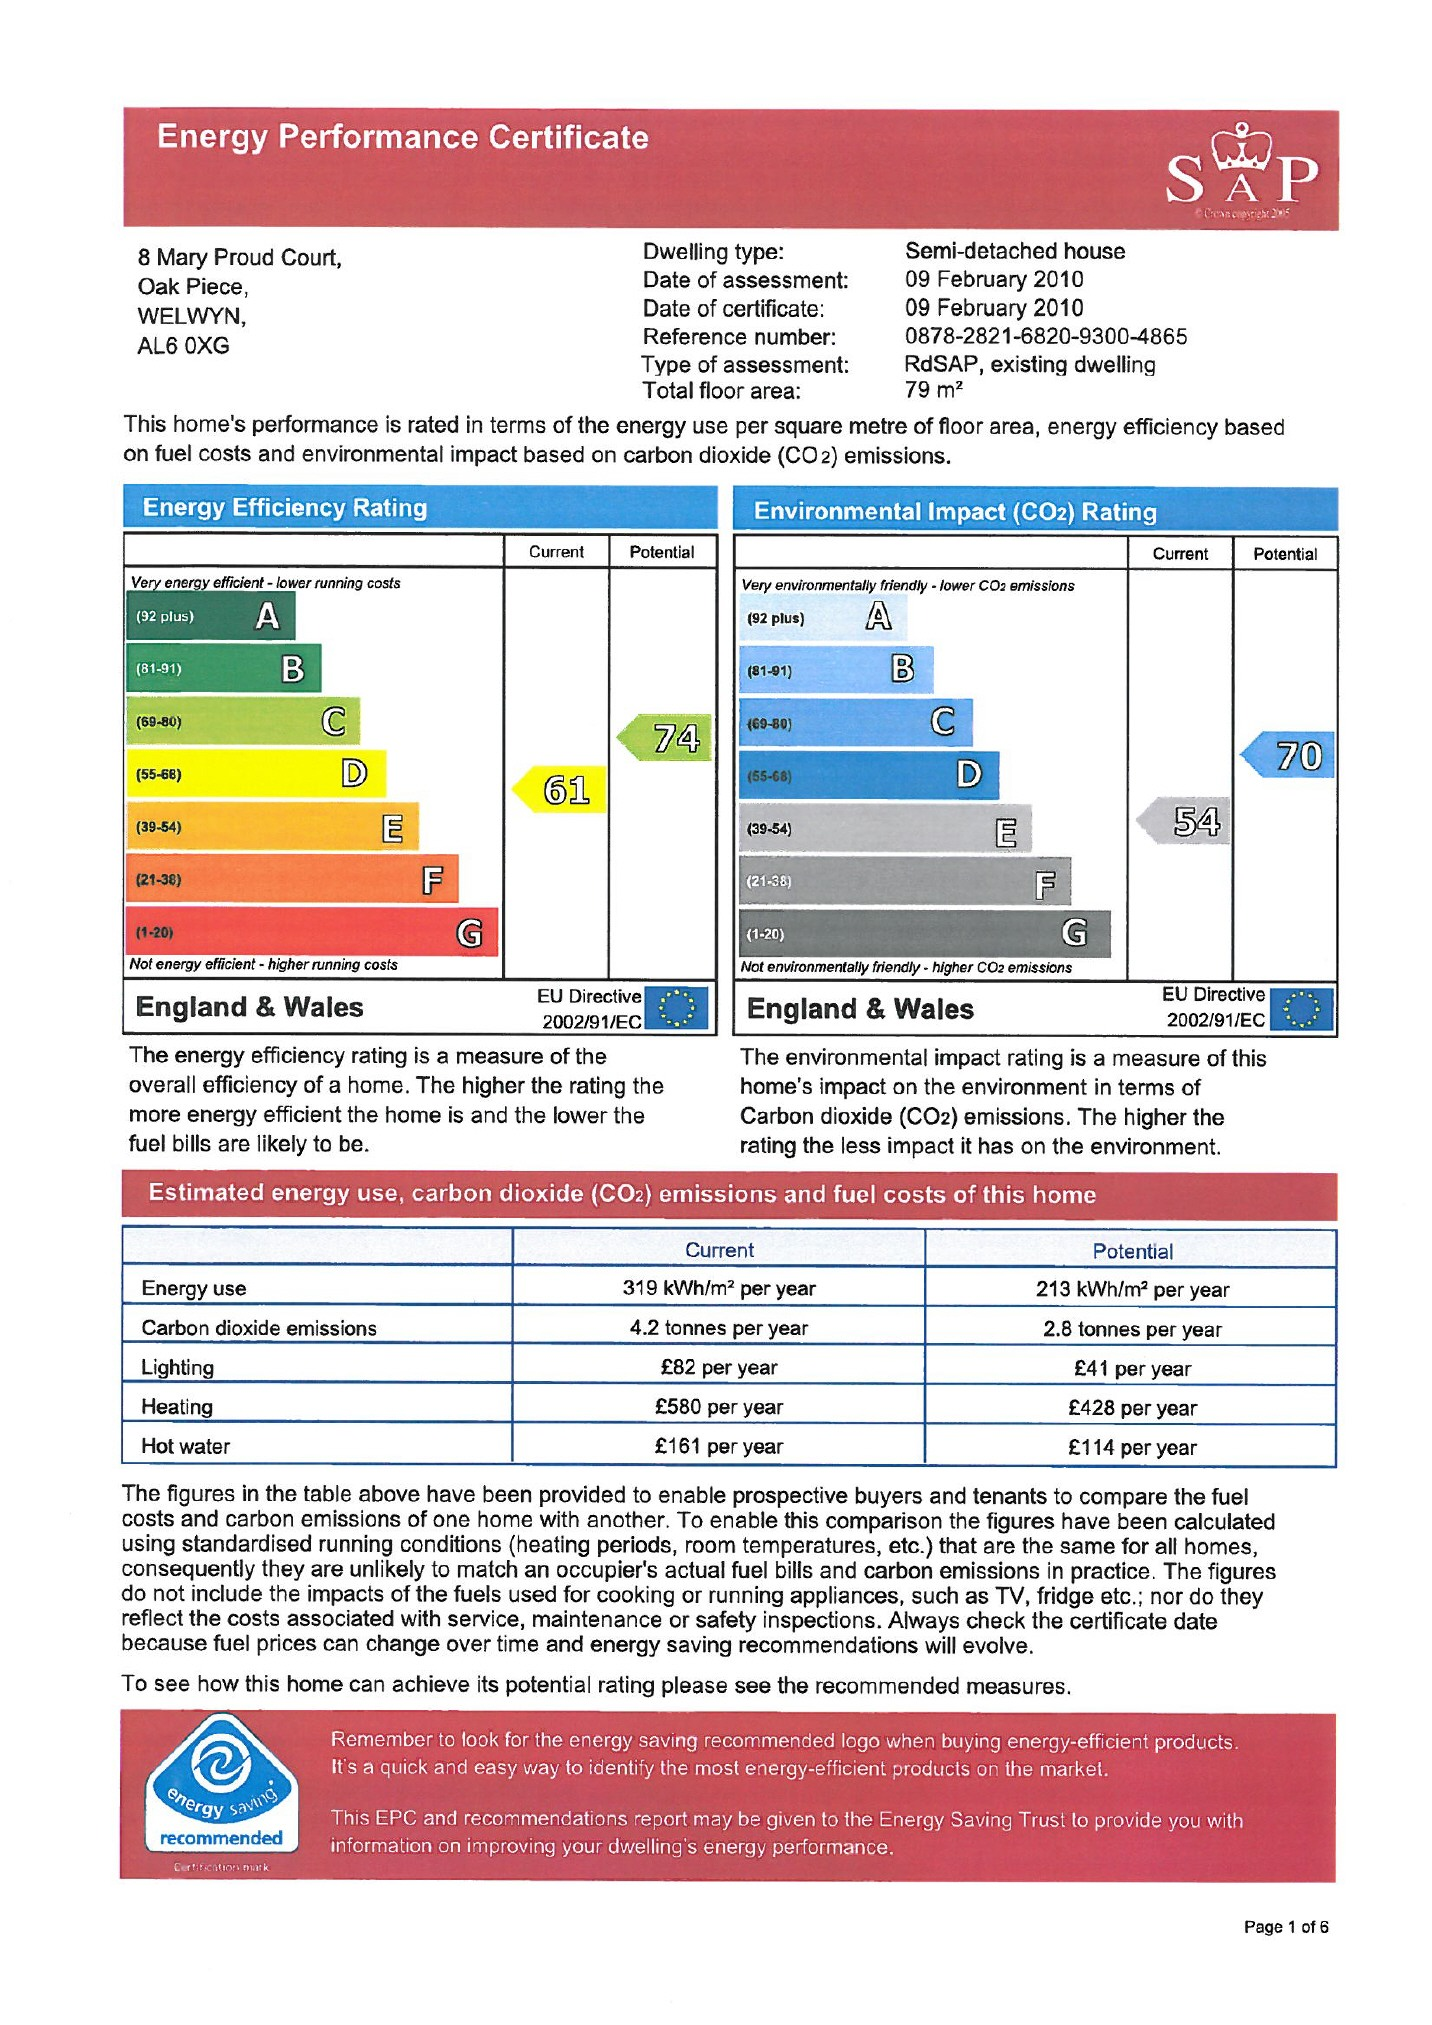 EPC Graph for Mary Proud Court, Oaklands, Welwyn AL6 0XG